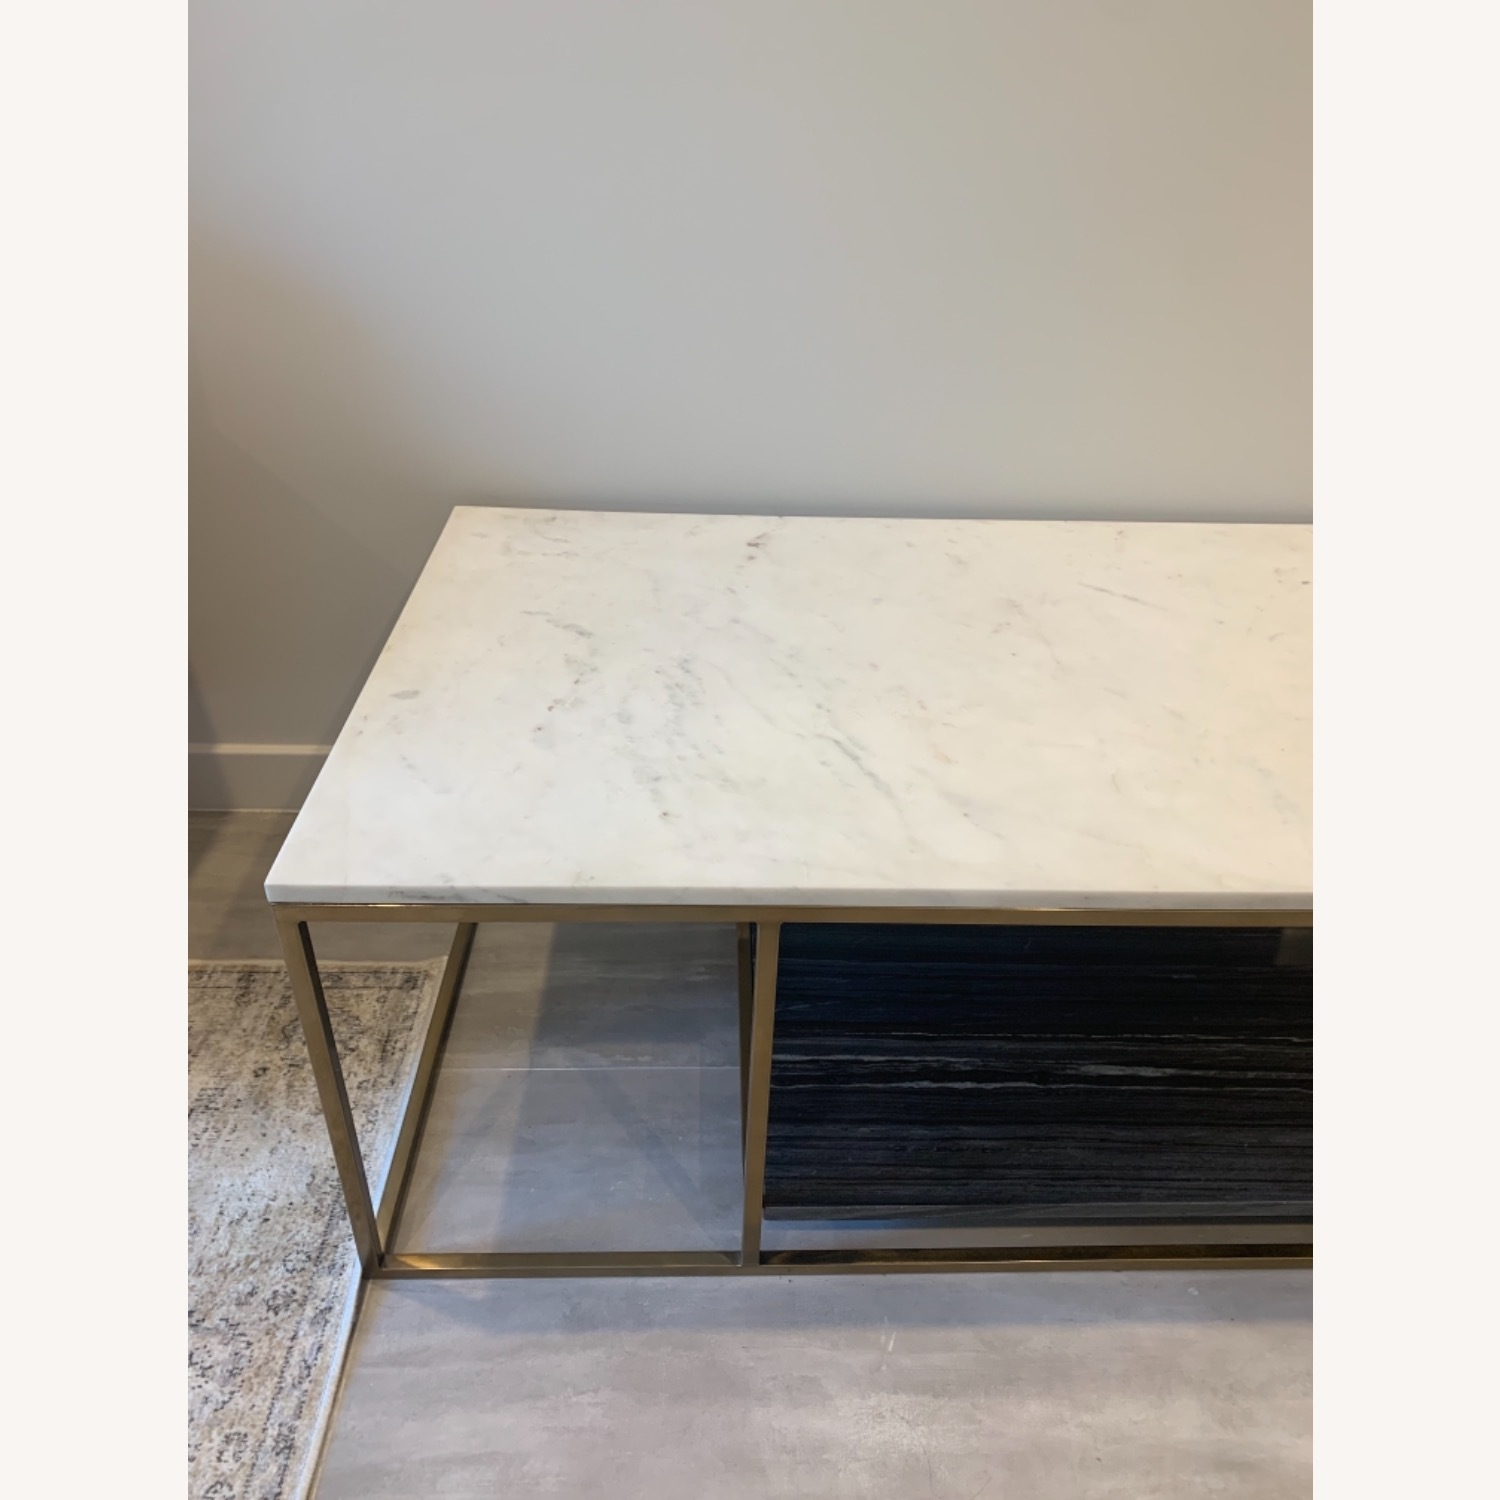 CB2 Grey and White Marble Coffee Table - image-12